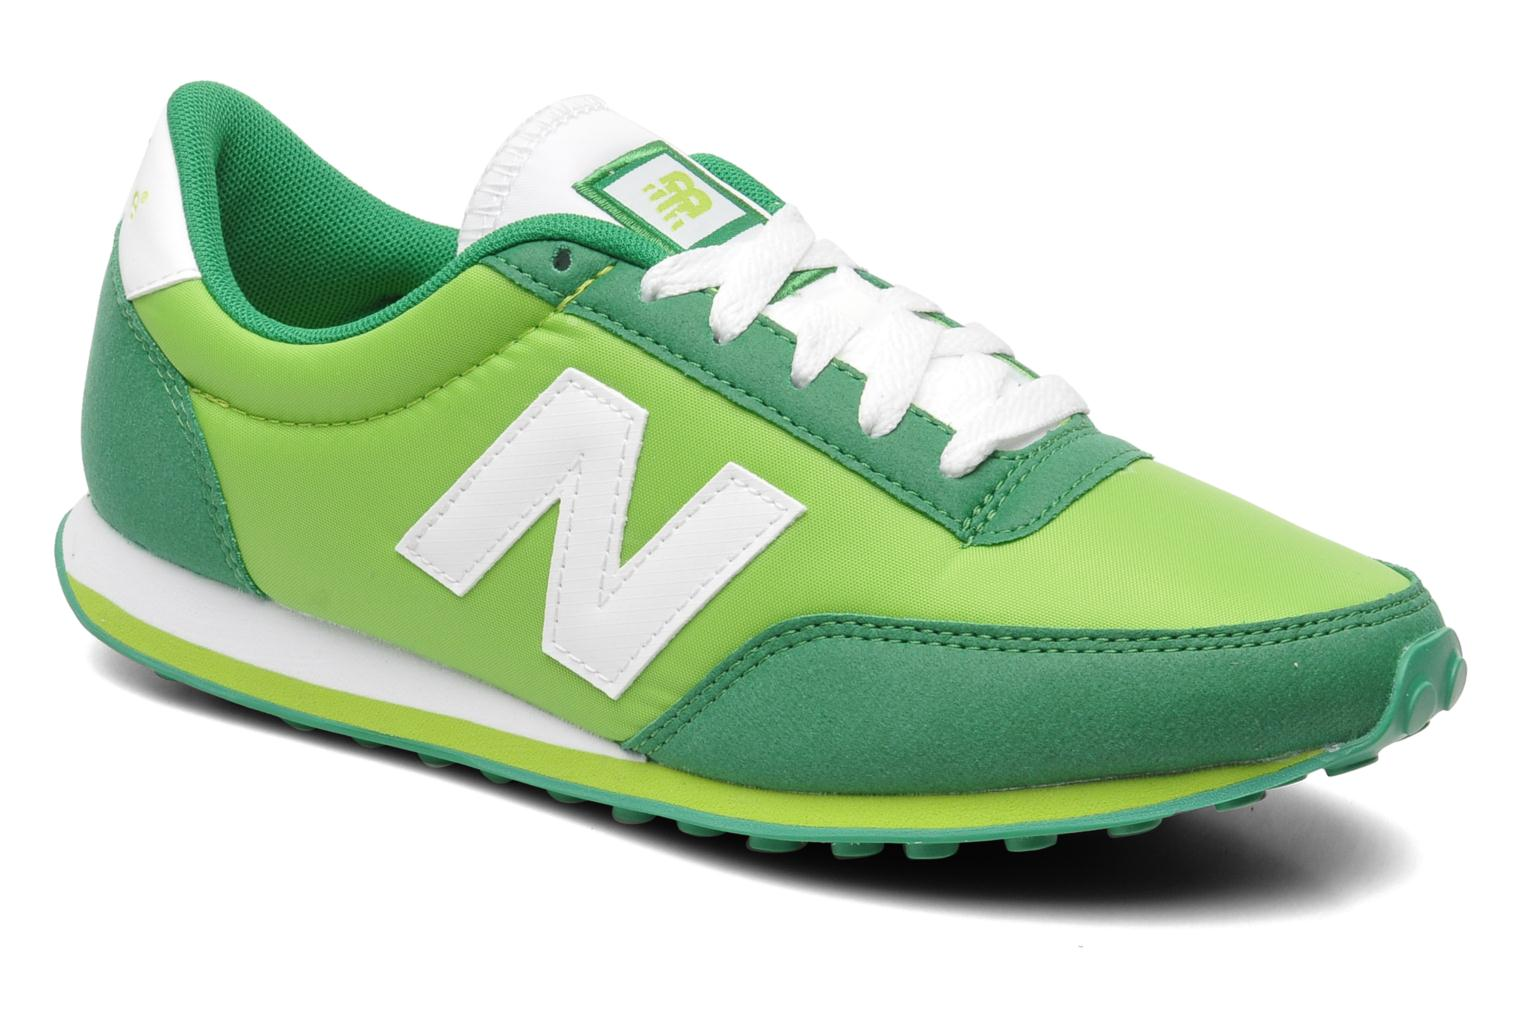 new balance u410 trainers in green at 199396. Black Bedroom Furniture Sets. Home Design Ideas